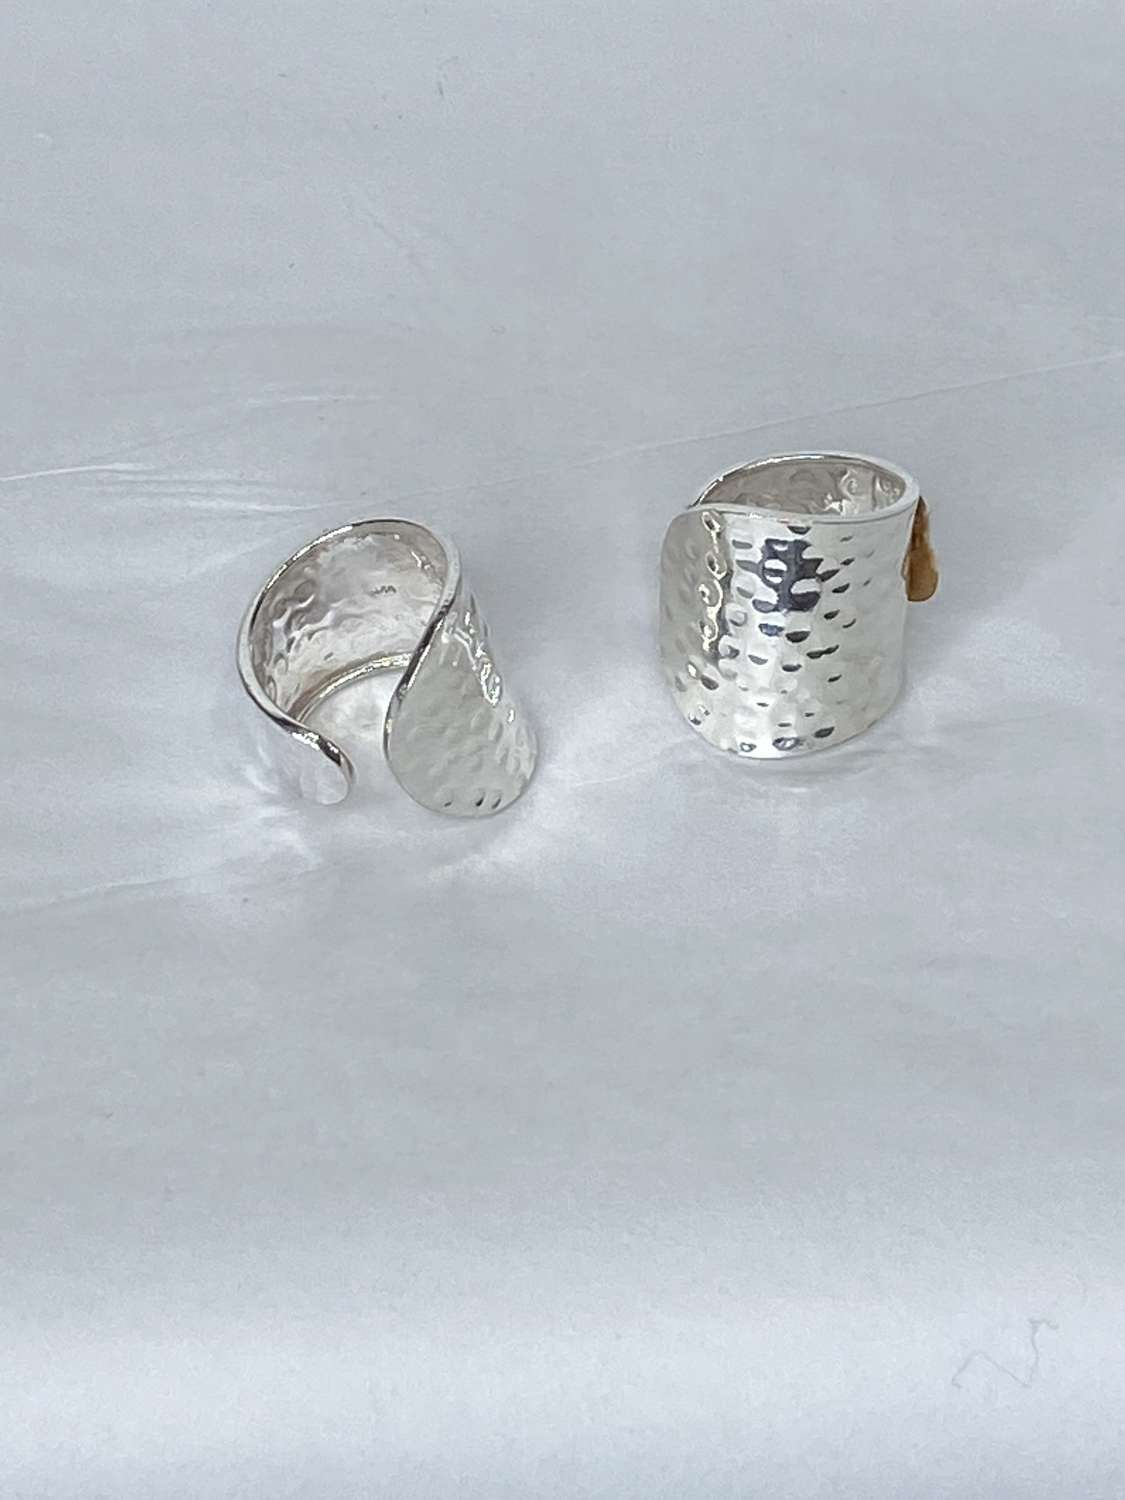 Hammered Stirling silver ring - One Size fits all